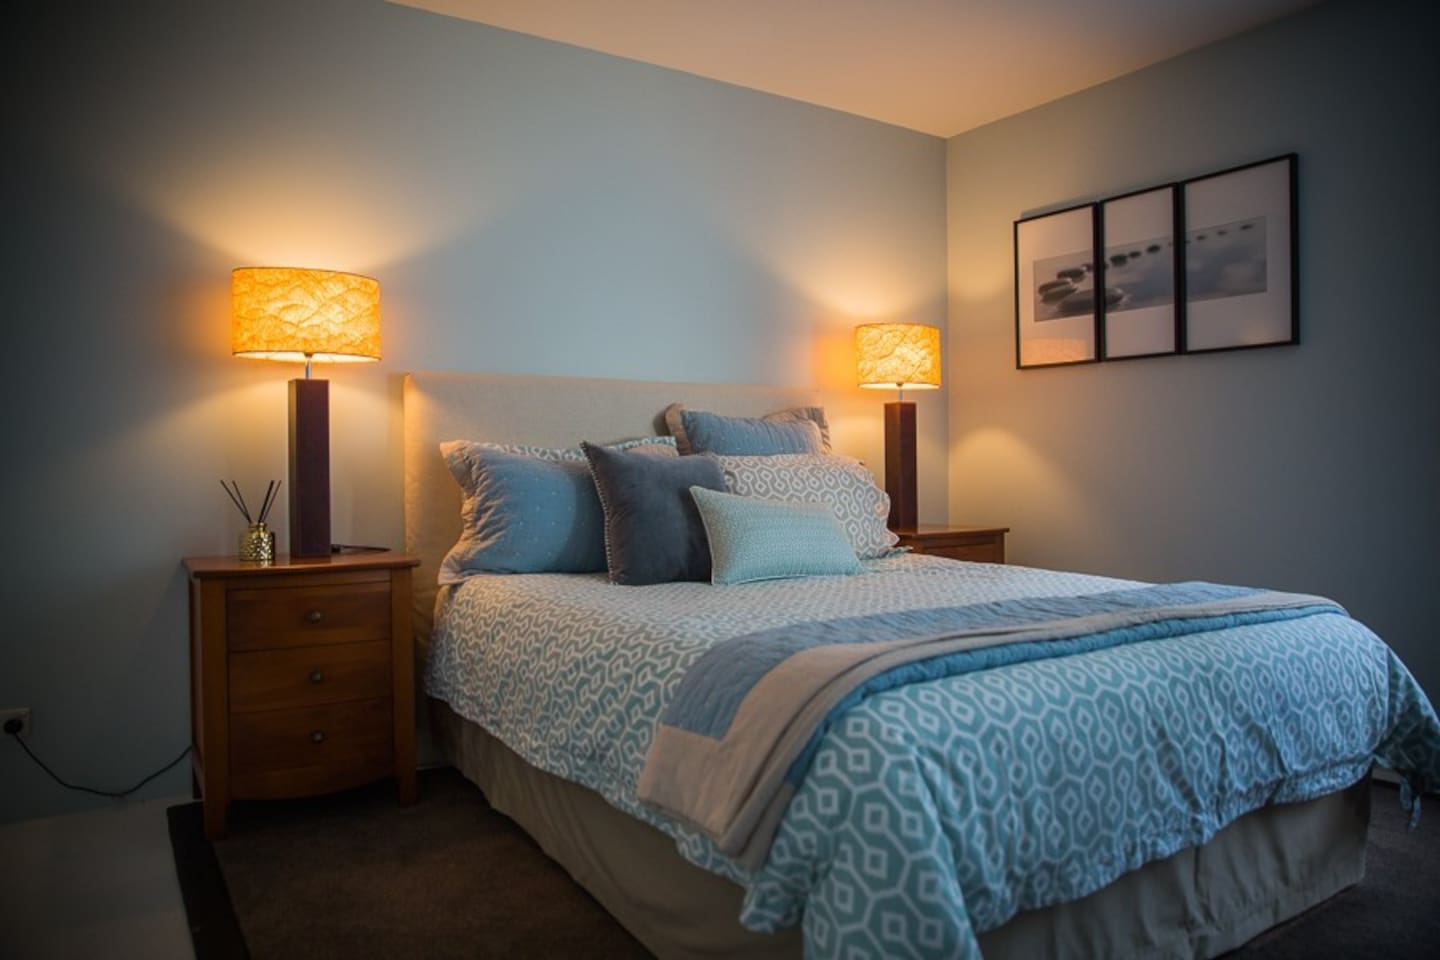 Guest Bedroom, large room with Queen bed, plenty of storage and desk.